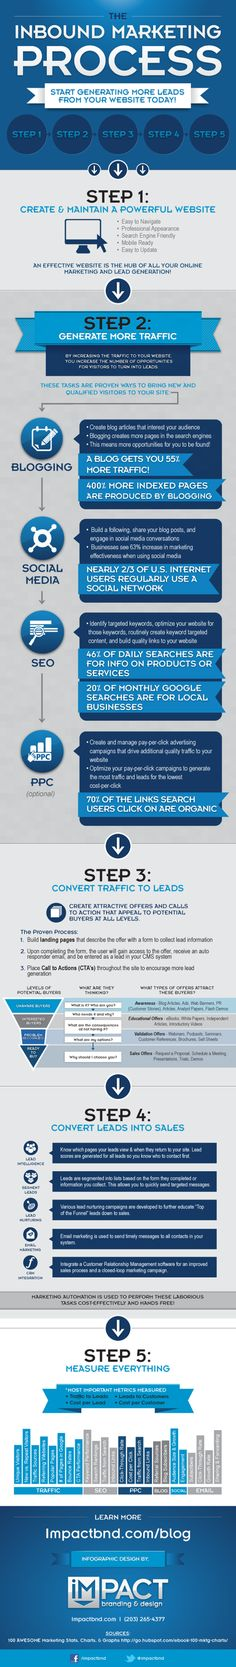 Awesome infographic - How Inbound Marketing Works, From Start to Finish [INFOGRAPHIC] Read more: http://blog.hubspot.com/blog/tabid/6307/bid/31271/How-Inbound-Marketing-Works-From-Start-to-Finish-INFOGRAPHIC.aspx#ixzz1mwFlQLGx